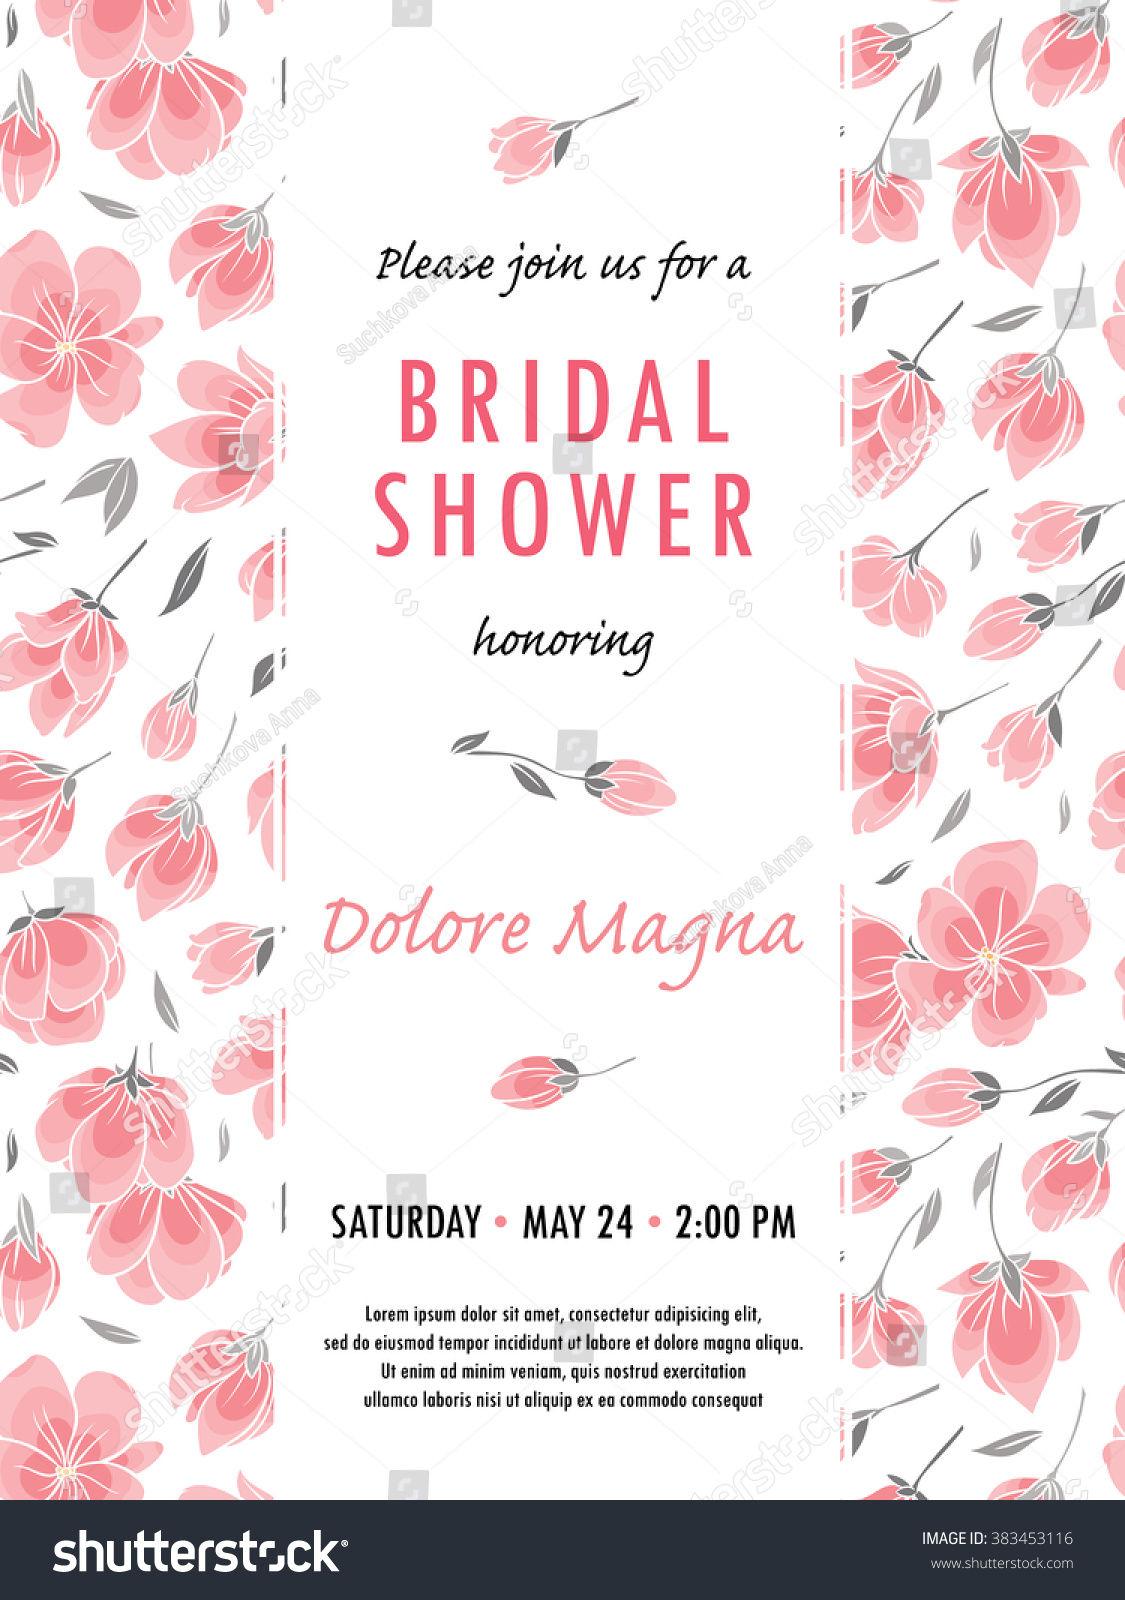 bridal shower advice cards template - invitation bridal shower card cherry sakura stock vector